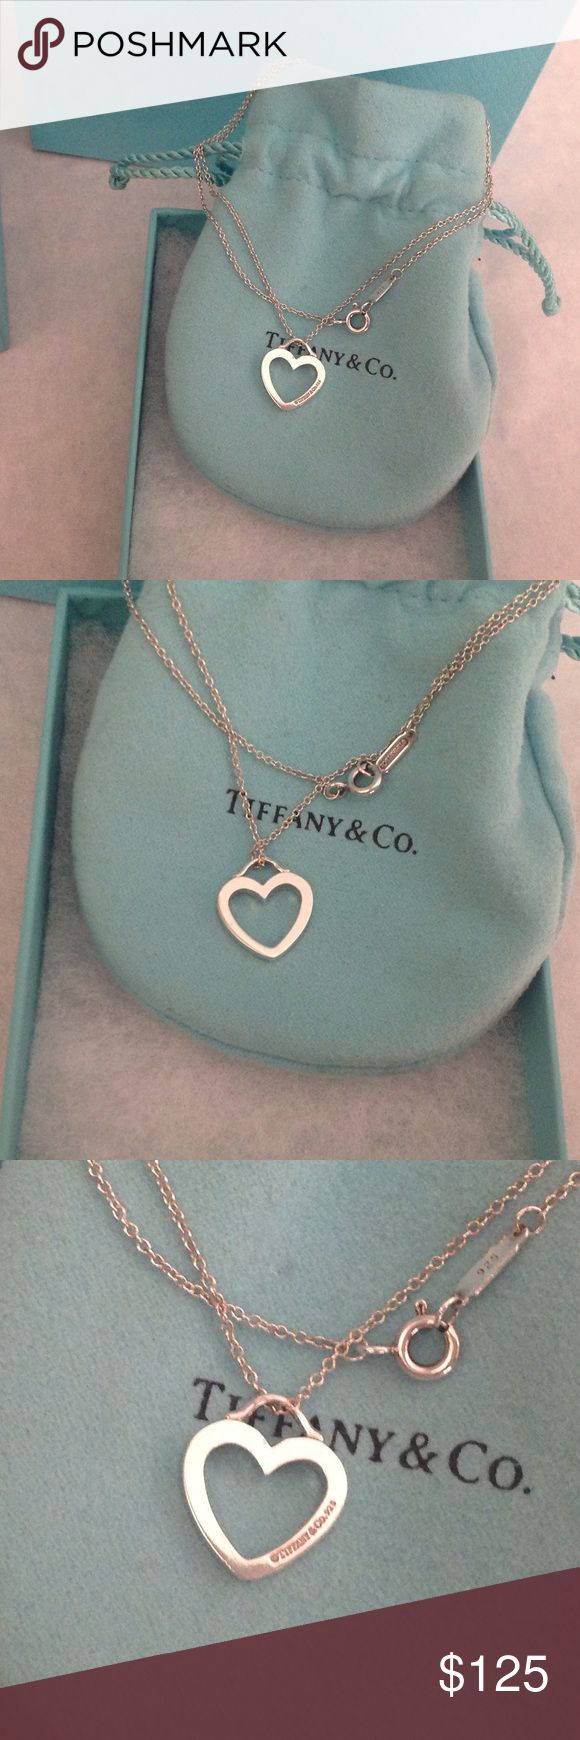 "2 HR SALE🎉Tiffany & Co. Heart Necklace Authentic sterling silver Tiffany heart on a 16"" Tiffany chain. This is in good used condition, some signs of wear as shown in pictures.  Very cute and dainty, comes with Tiffany pouch, no box. 🚫NO TRADES🚫SALE PRICE IS FIRM. Tiffany & Co. Jewelry Necklaces"